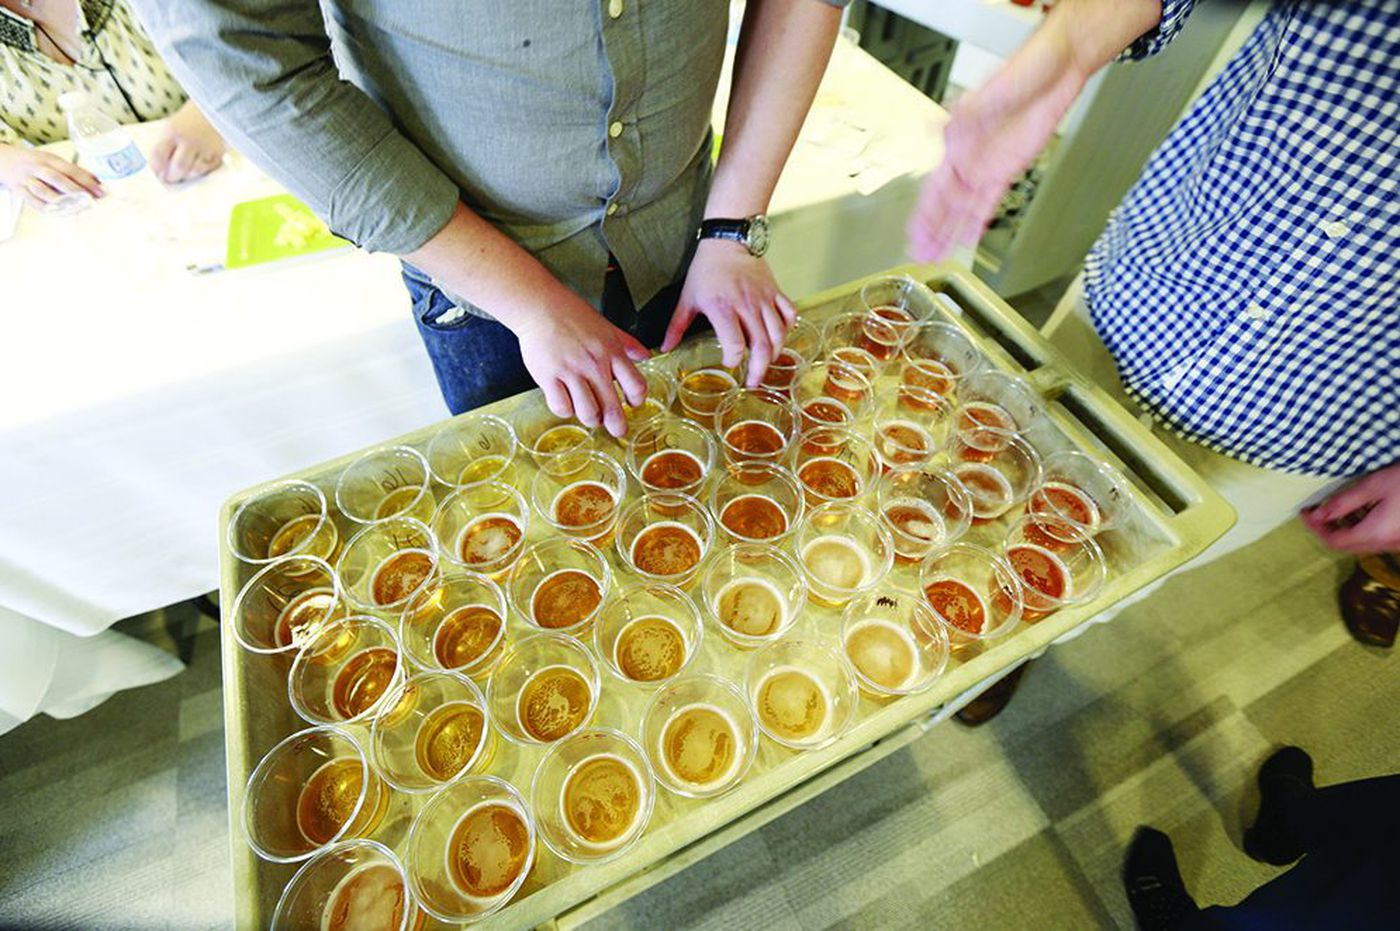 The next Brewvitational beer competition is going to be Can-tacular